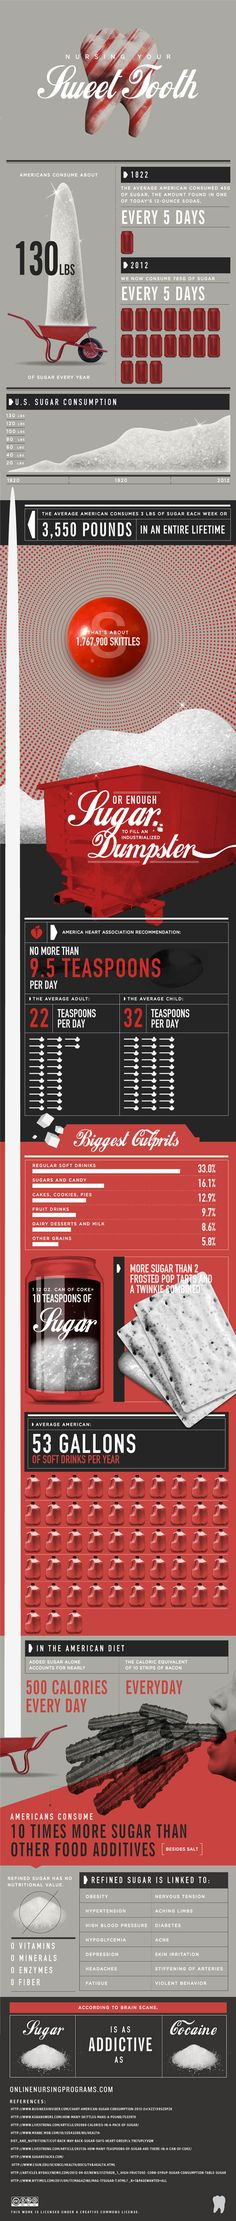 Mind-Blowing Sugar Consumption (Infographic)